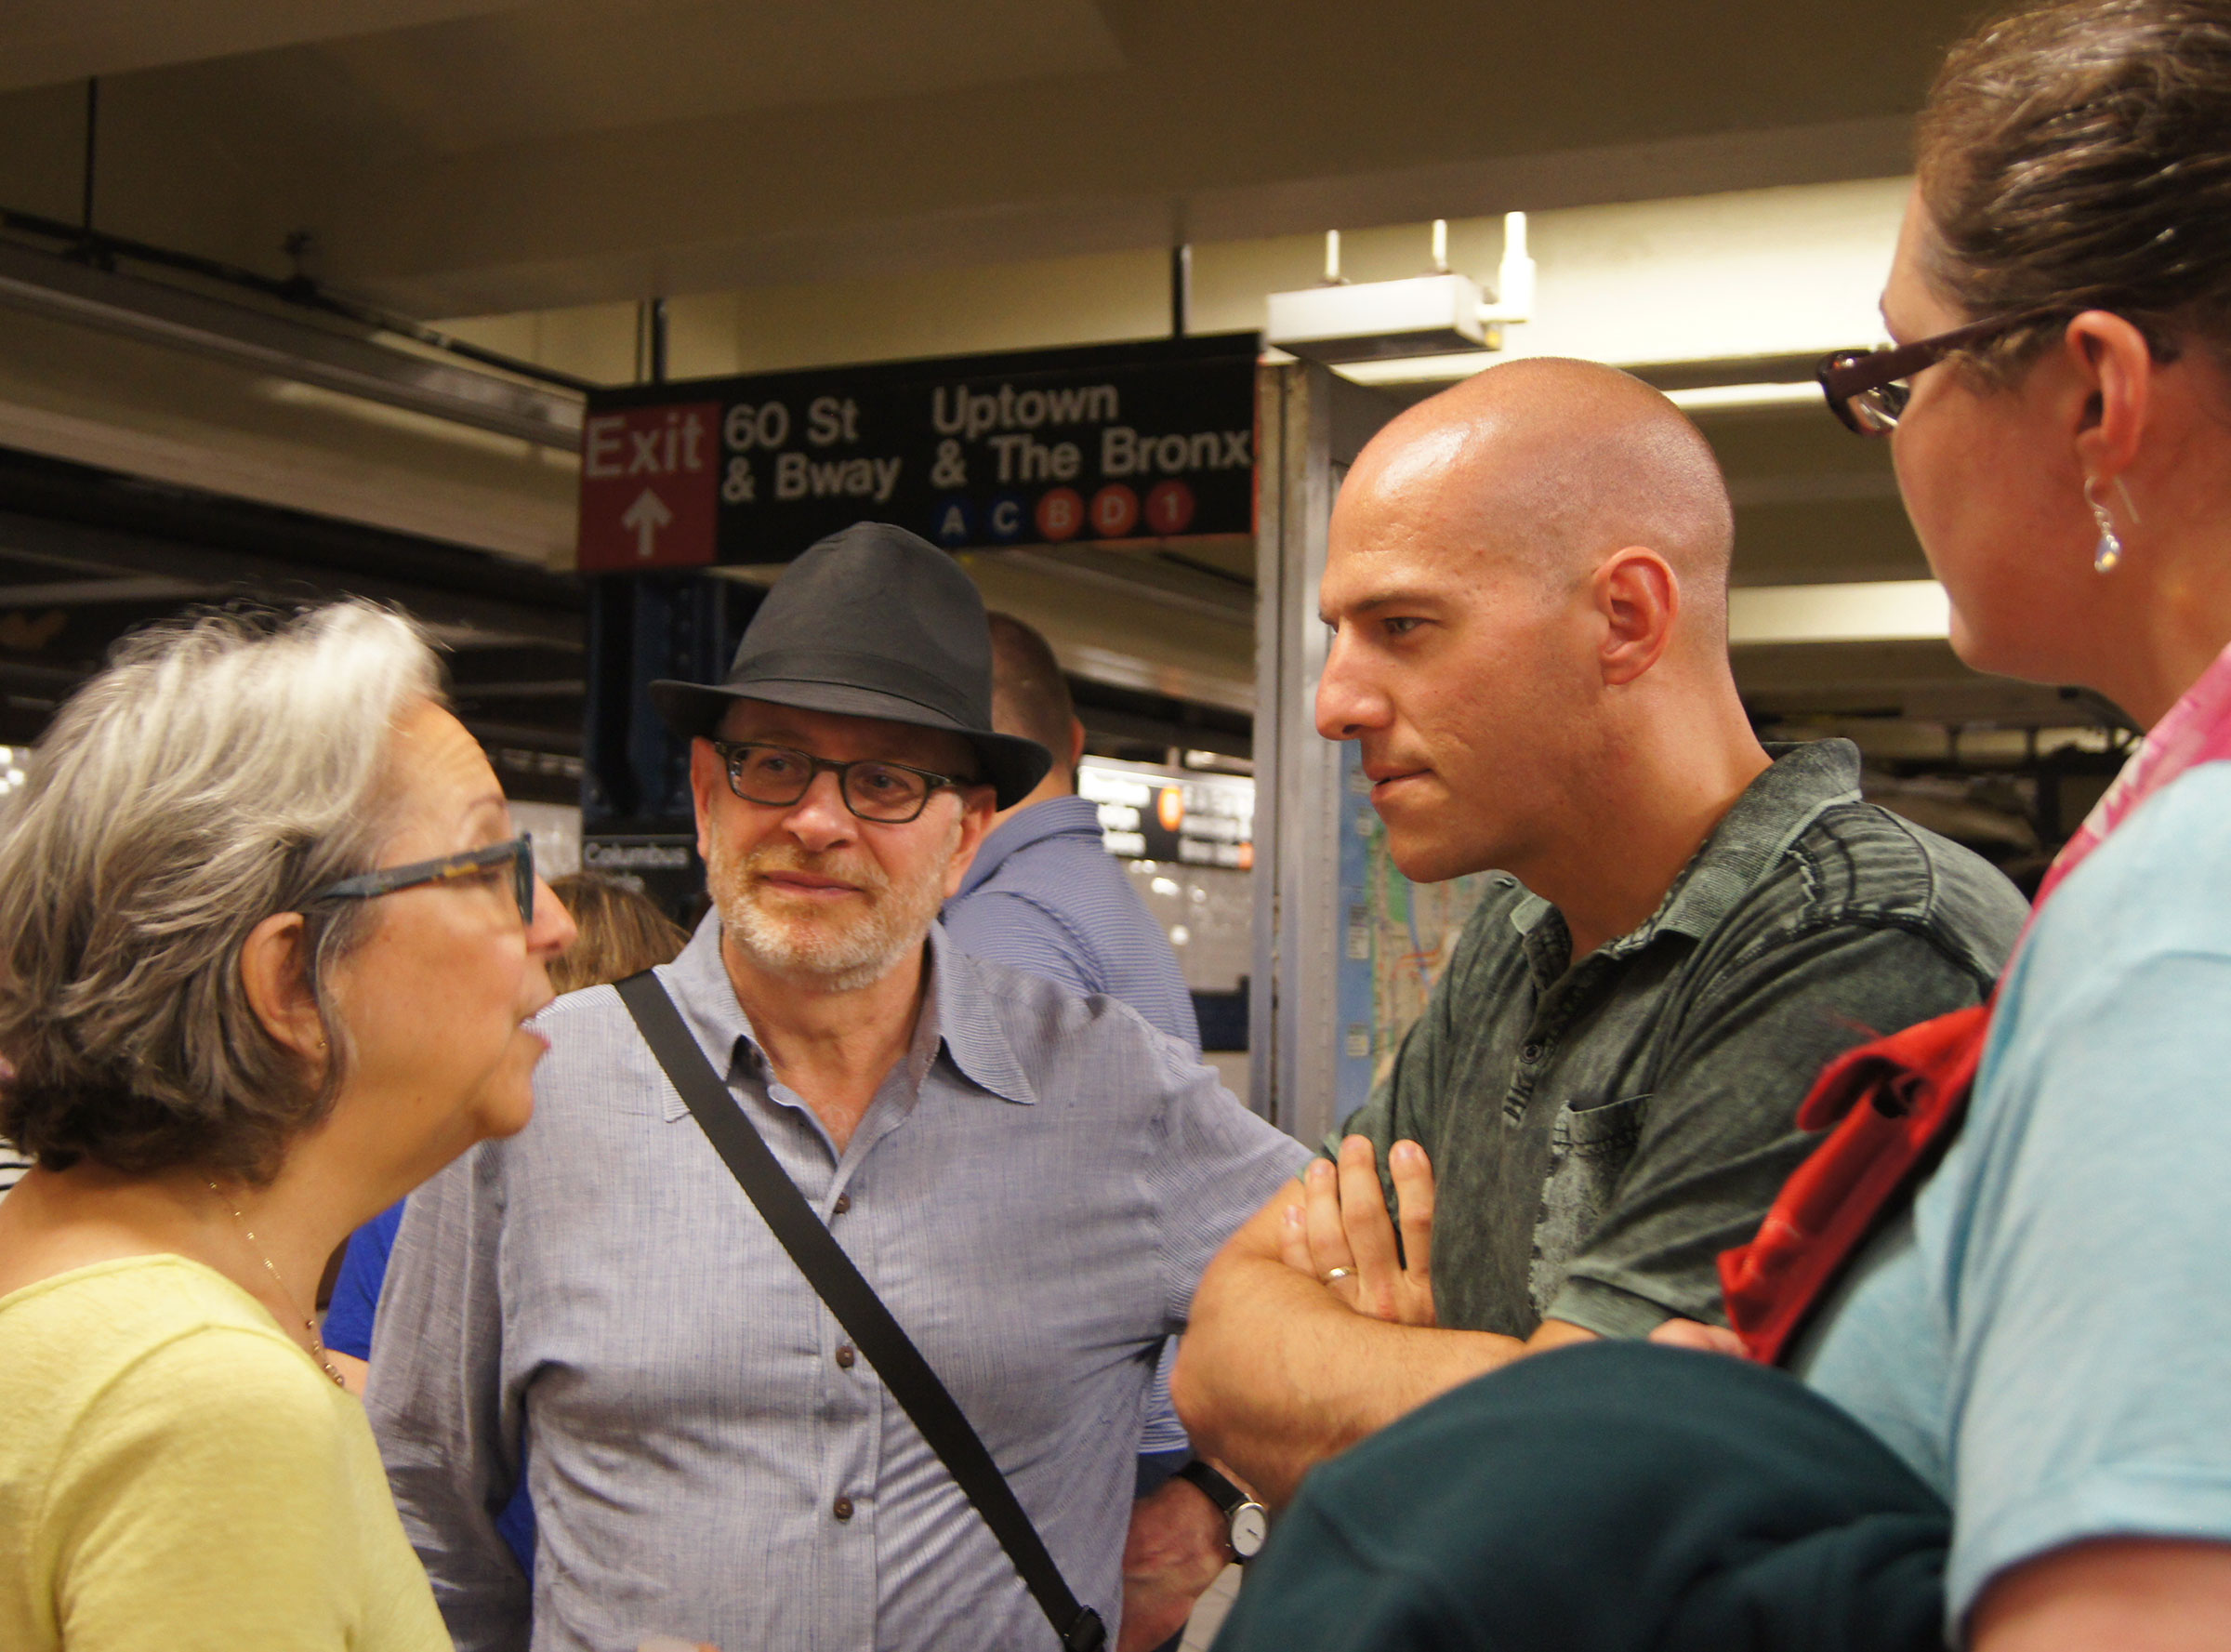 Rabbi Matalon (in hat) with Caleb Follett and other members of the exchange, at a subway stop in New York City.